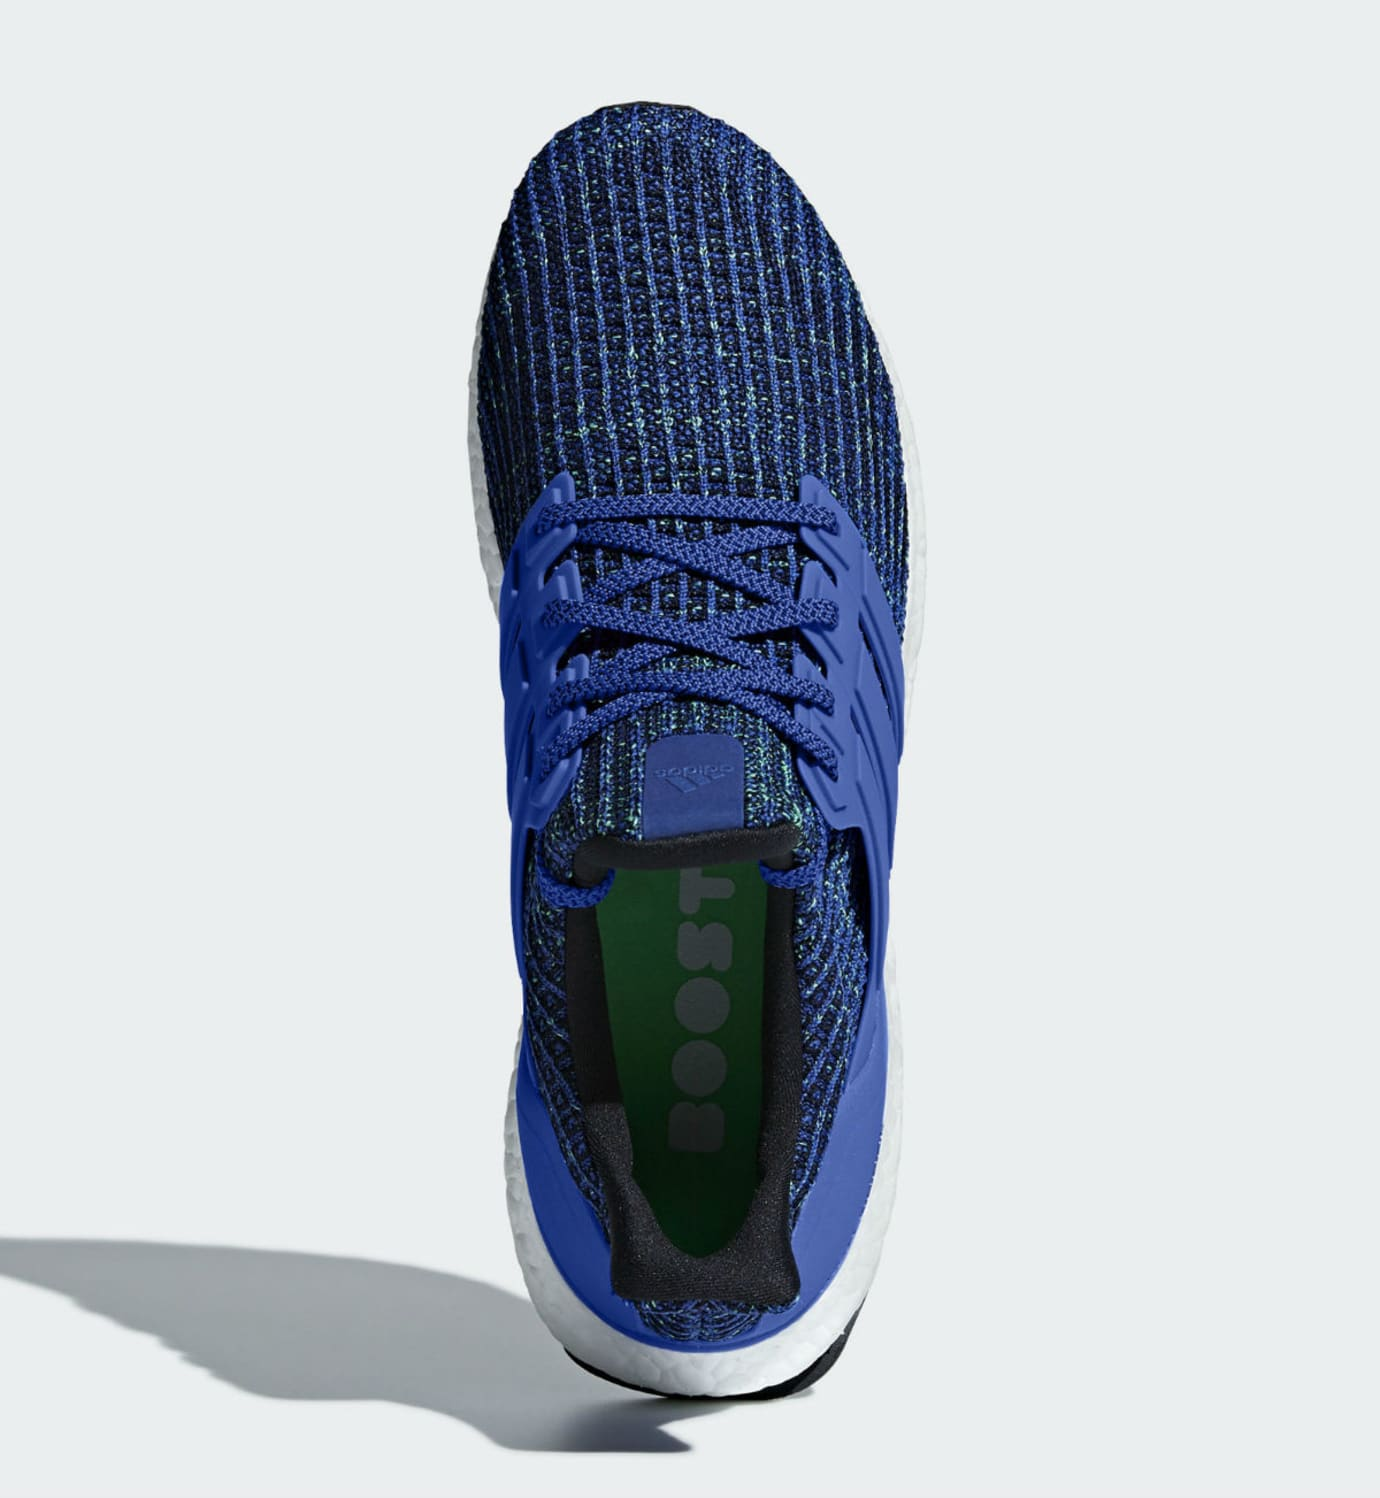 21be13651 Image via Adidas Adidas Ultra Boost 4.0 Hi Res Blue Release Date CM8112 Top